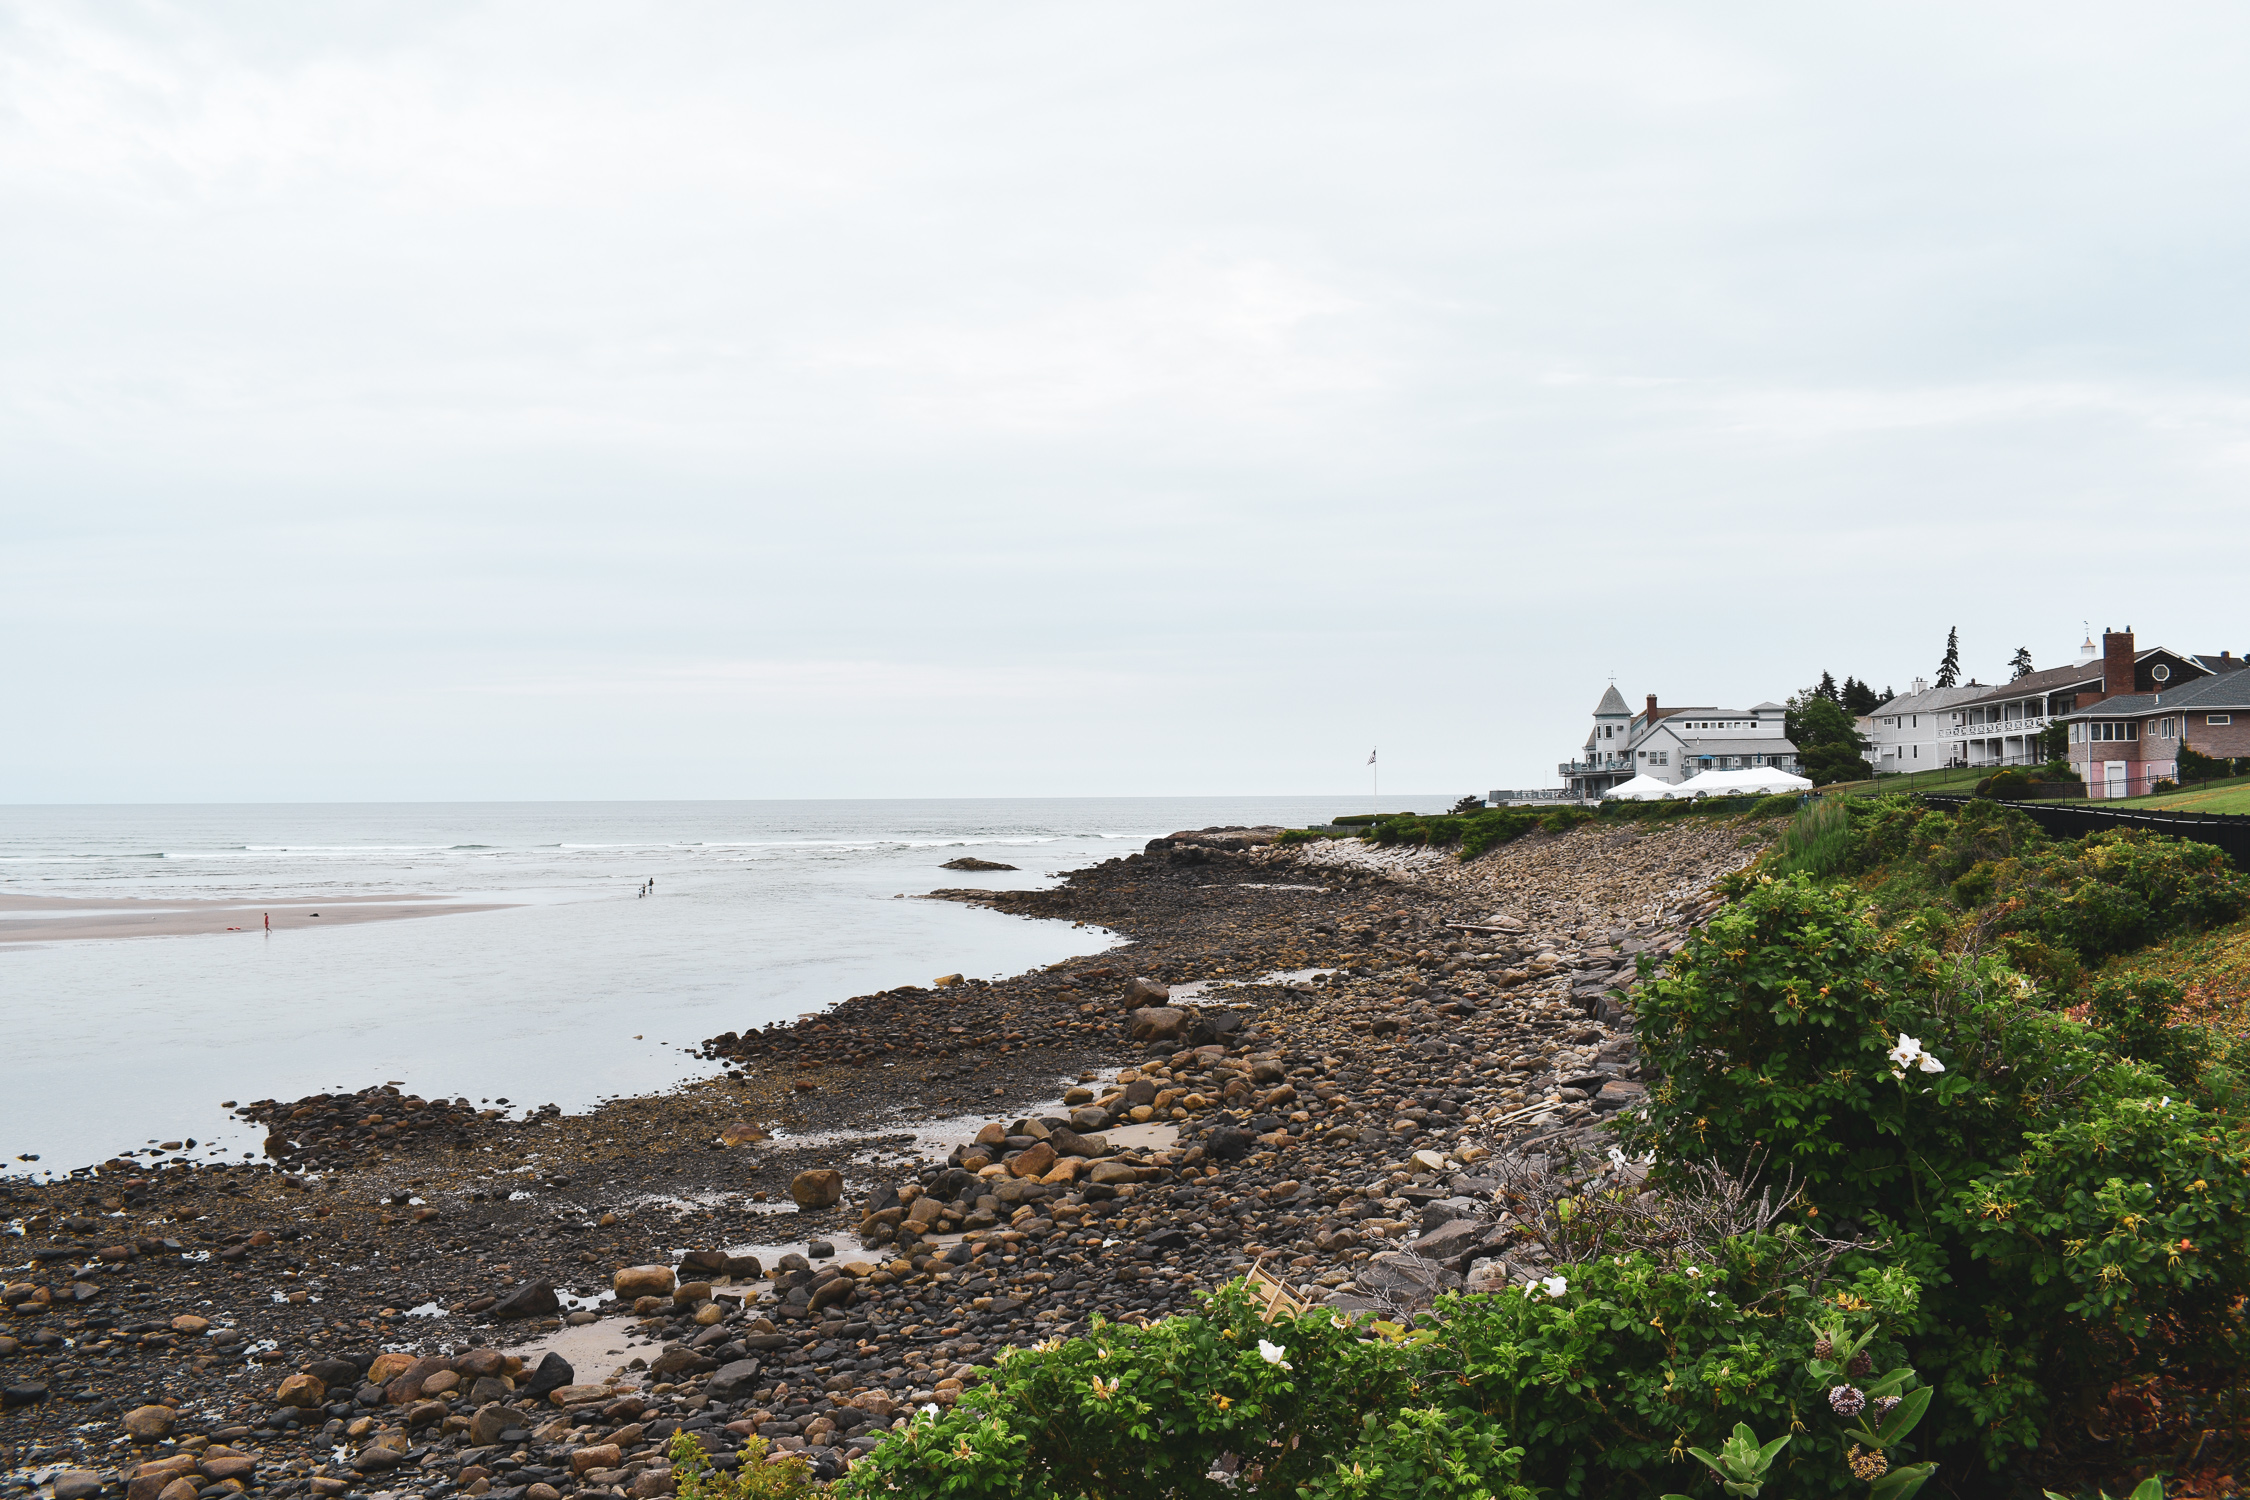 Ogunquit, Maine has always been one of my favorite places